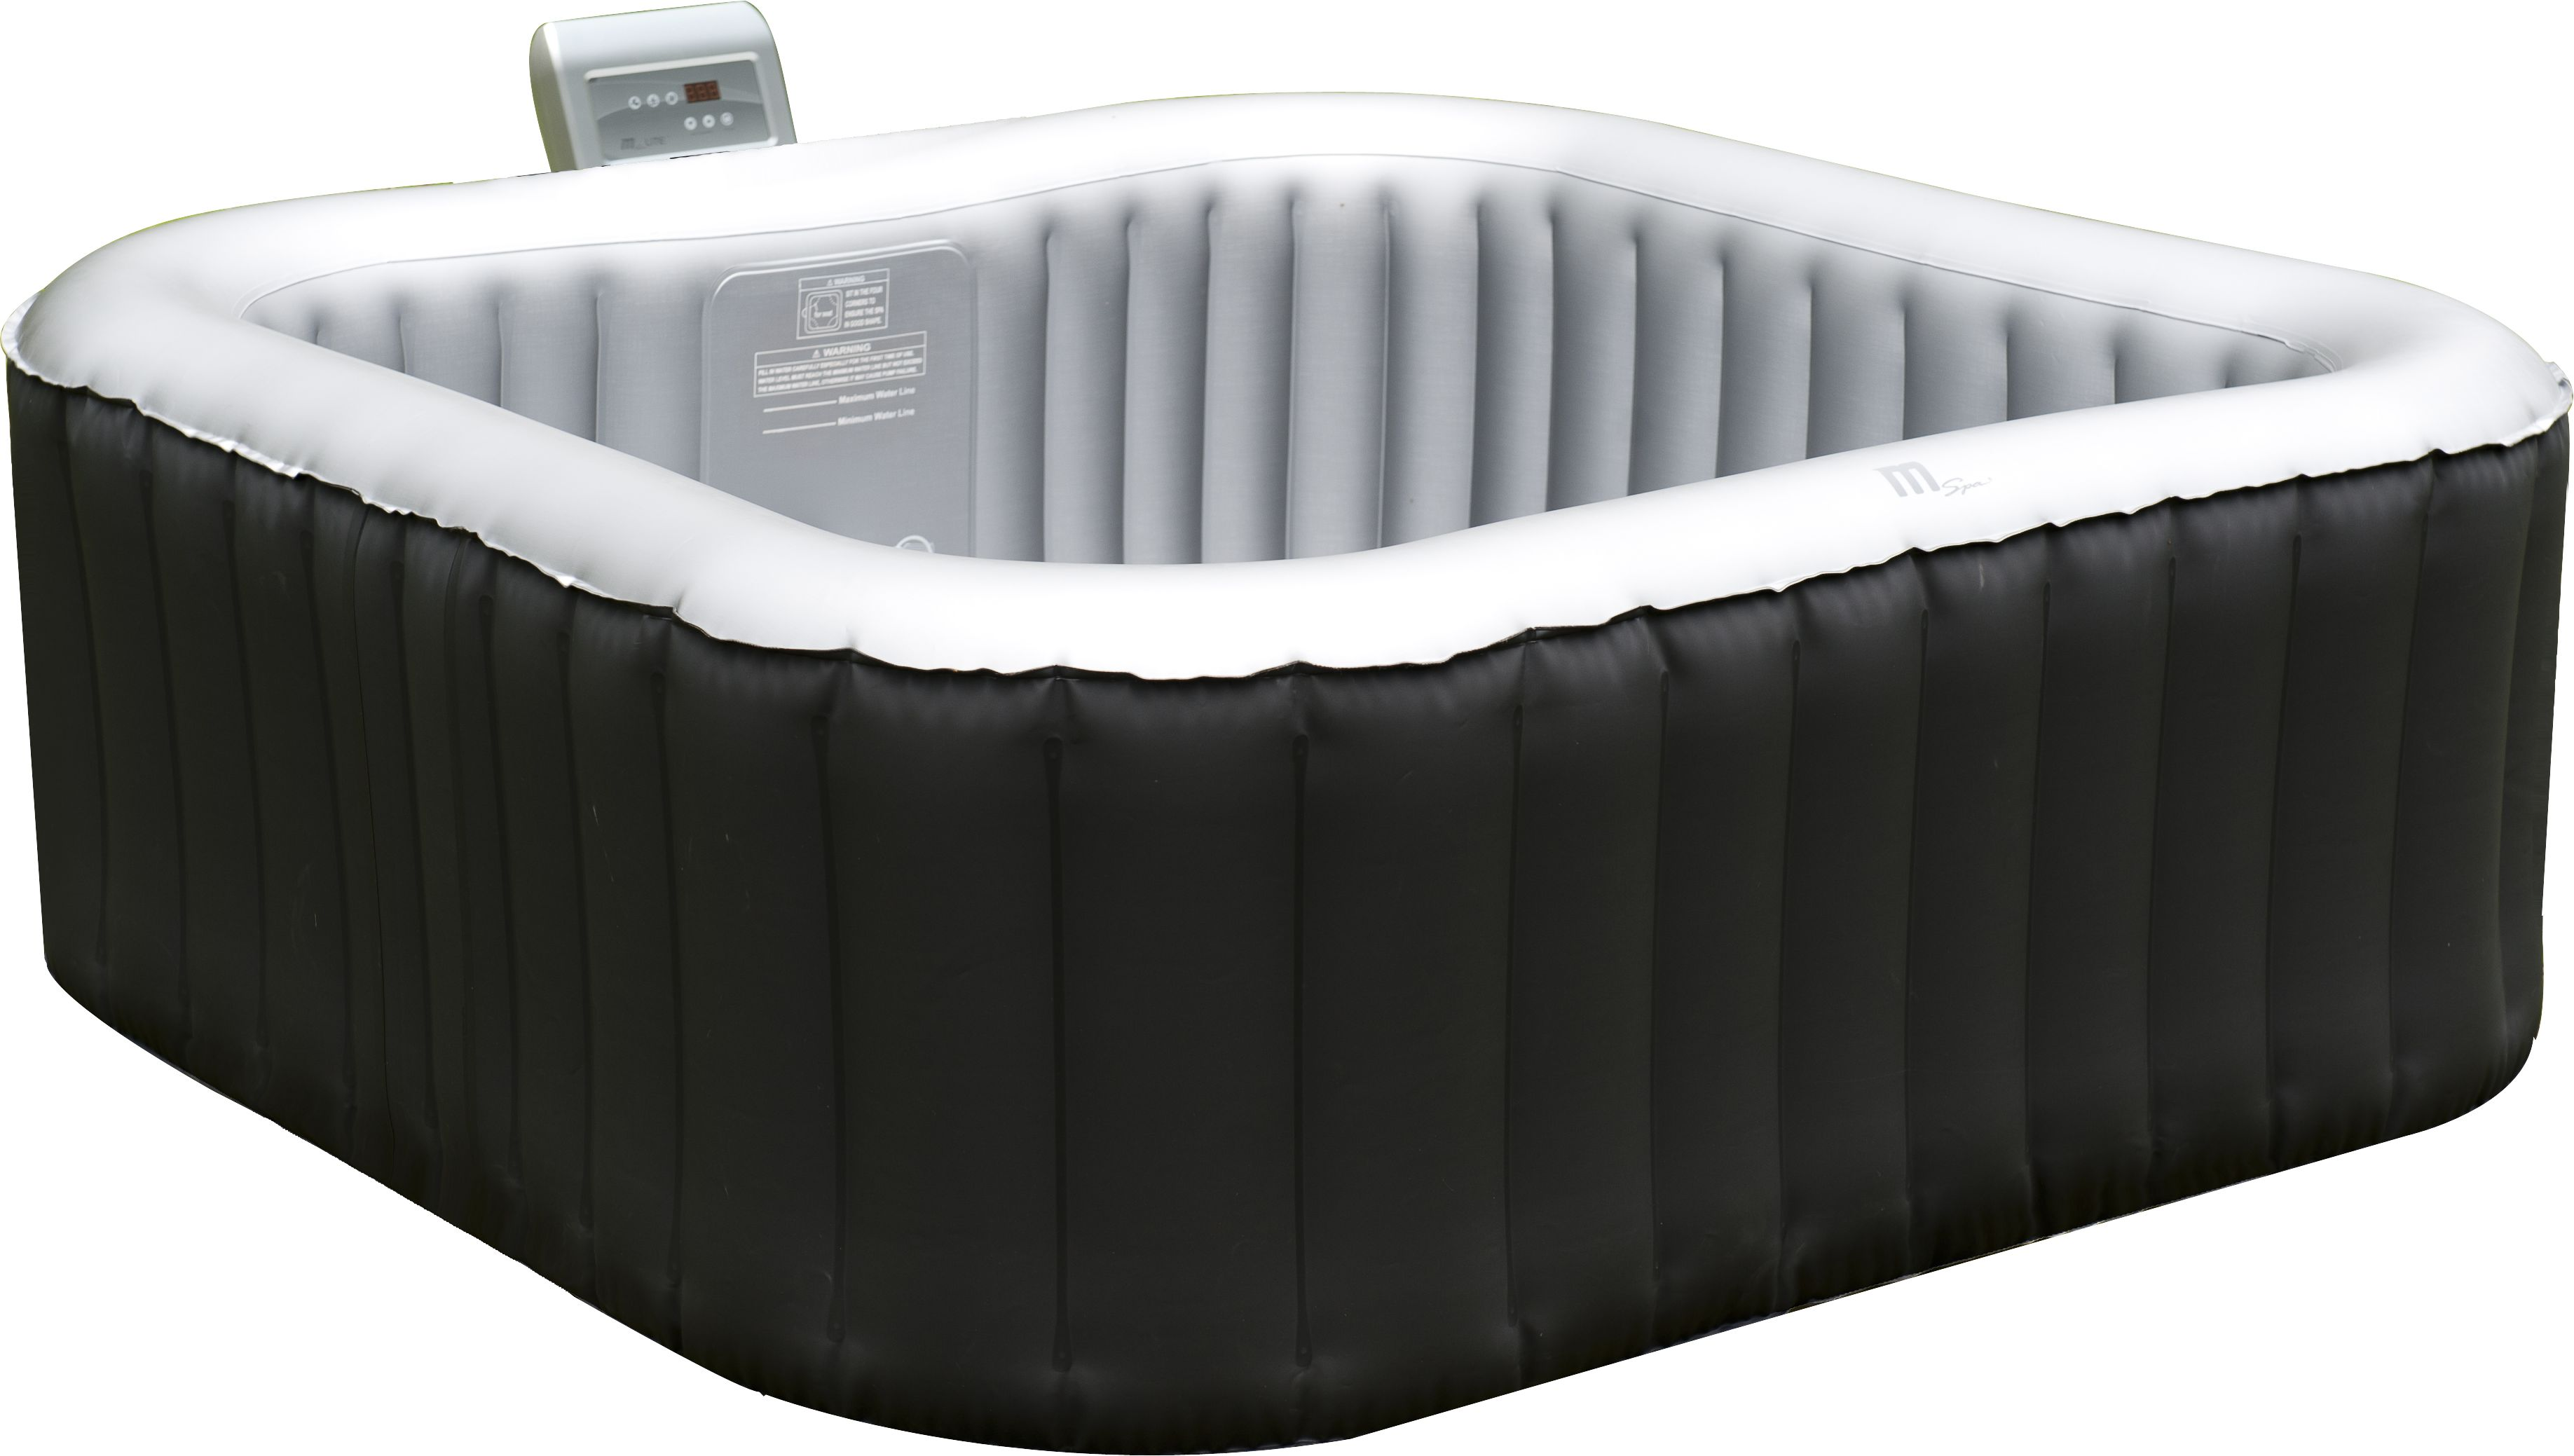 whirlpool f r 4 personen aufblasbar indoor outdoor jacuzzi. Black Bedroom Furniture Sets. Home Design Ideas